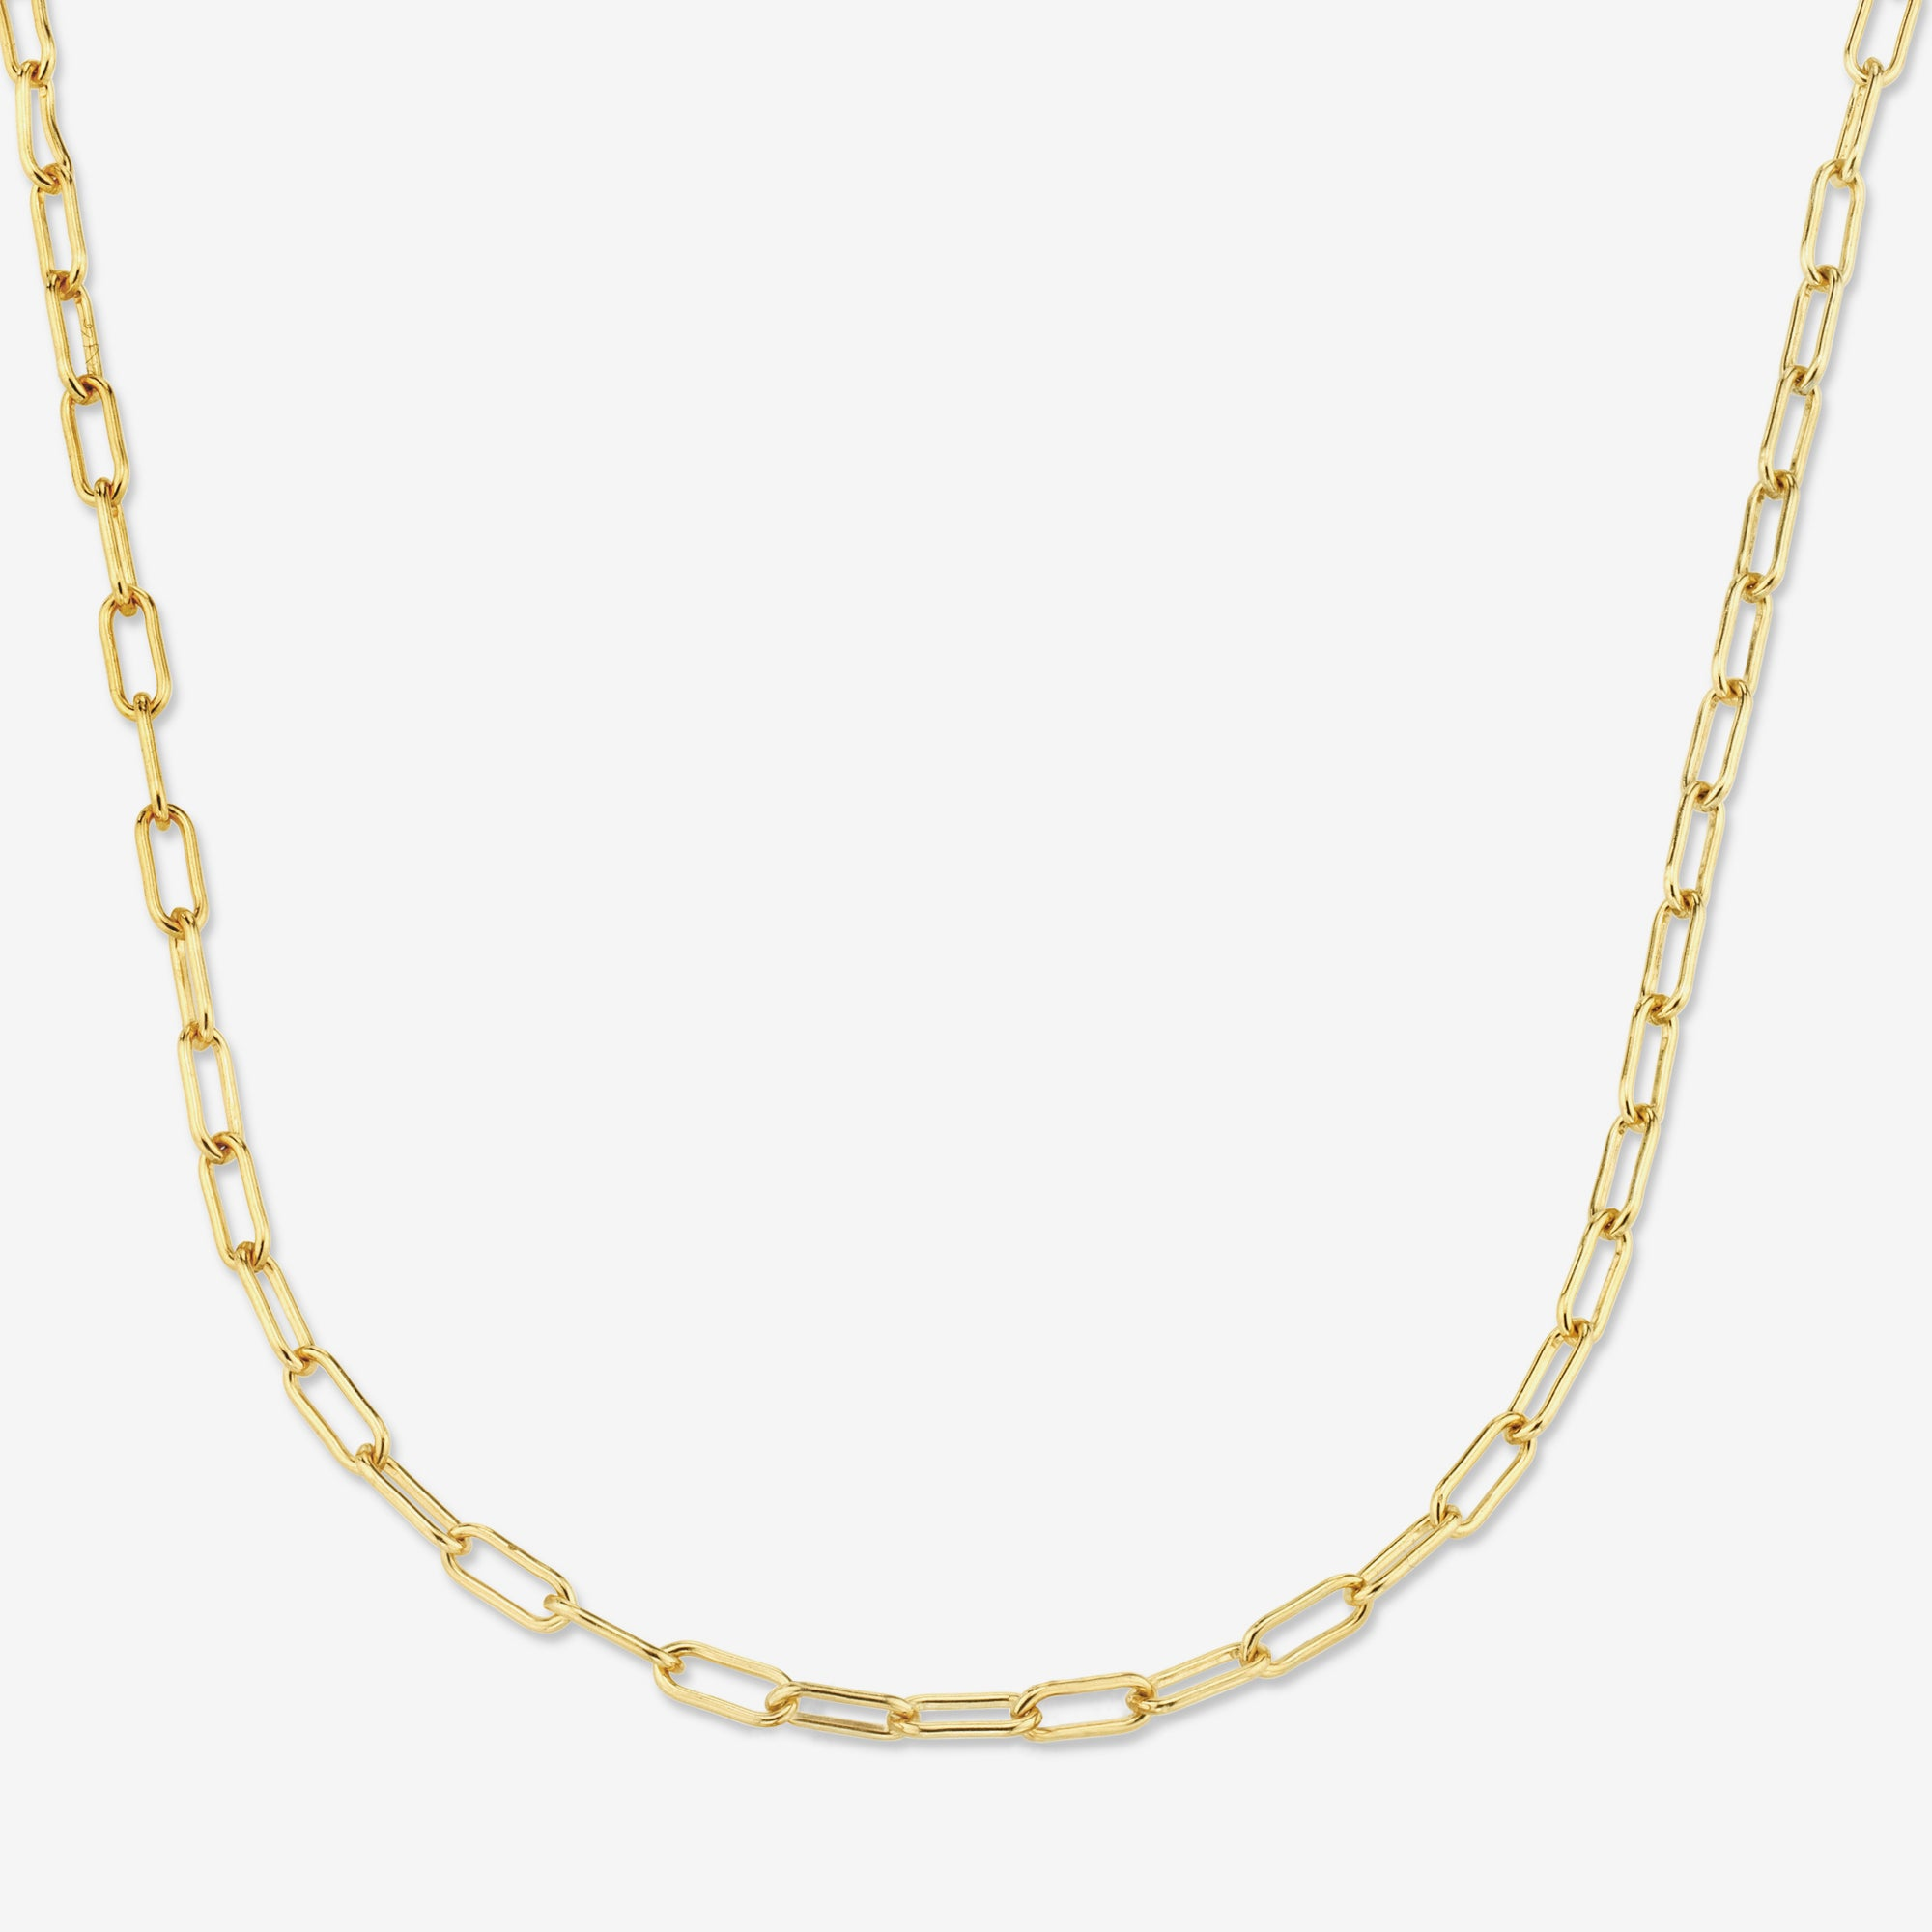 GOLD FILLED LONG LINK CHAIN NECKLACE